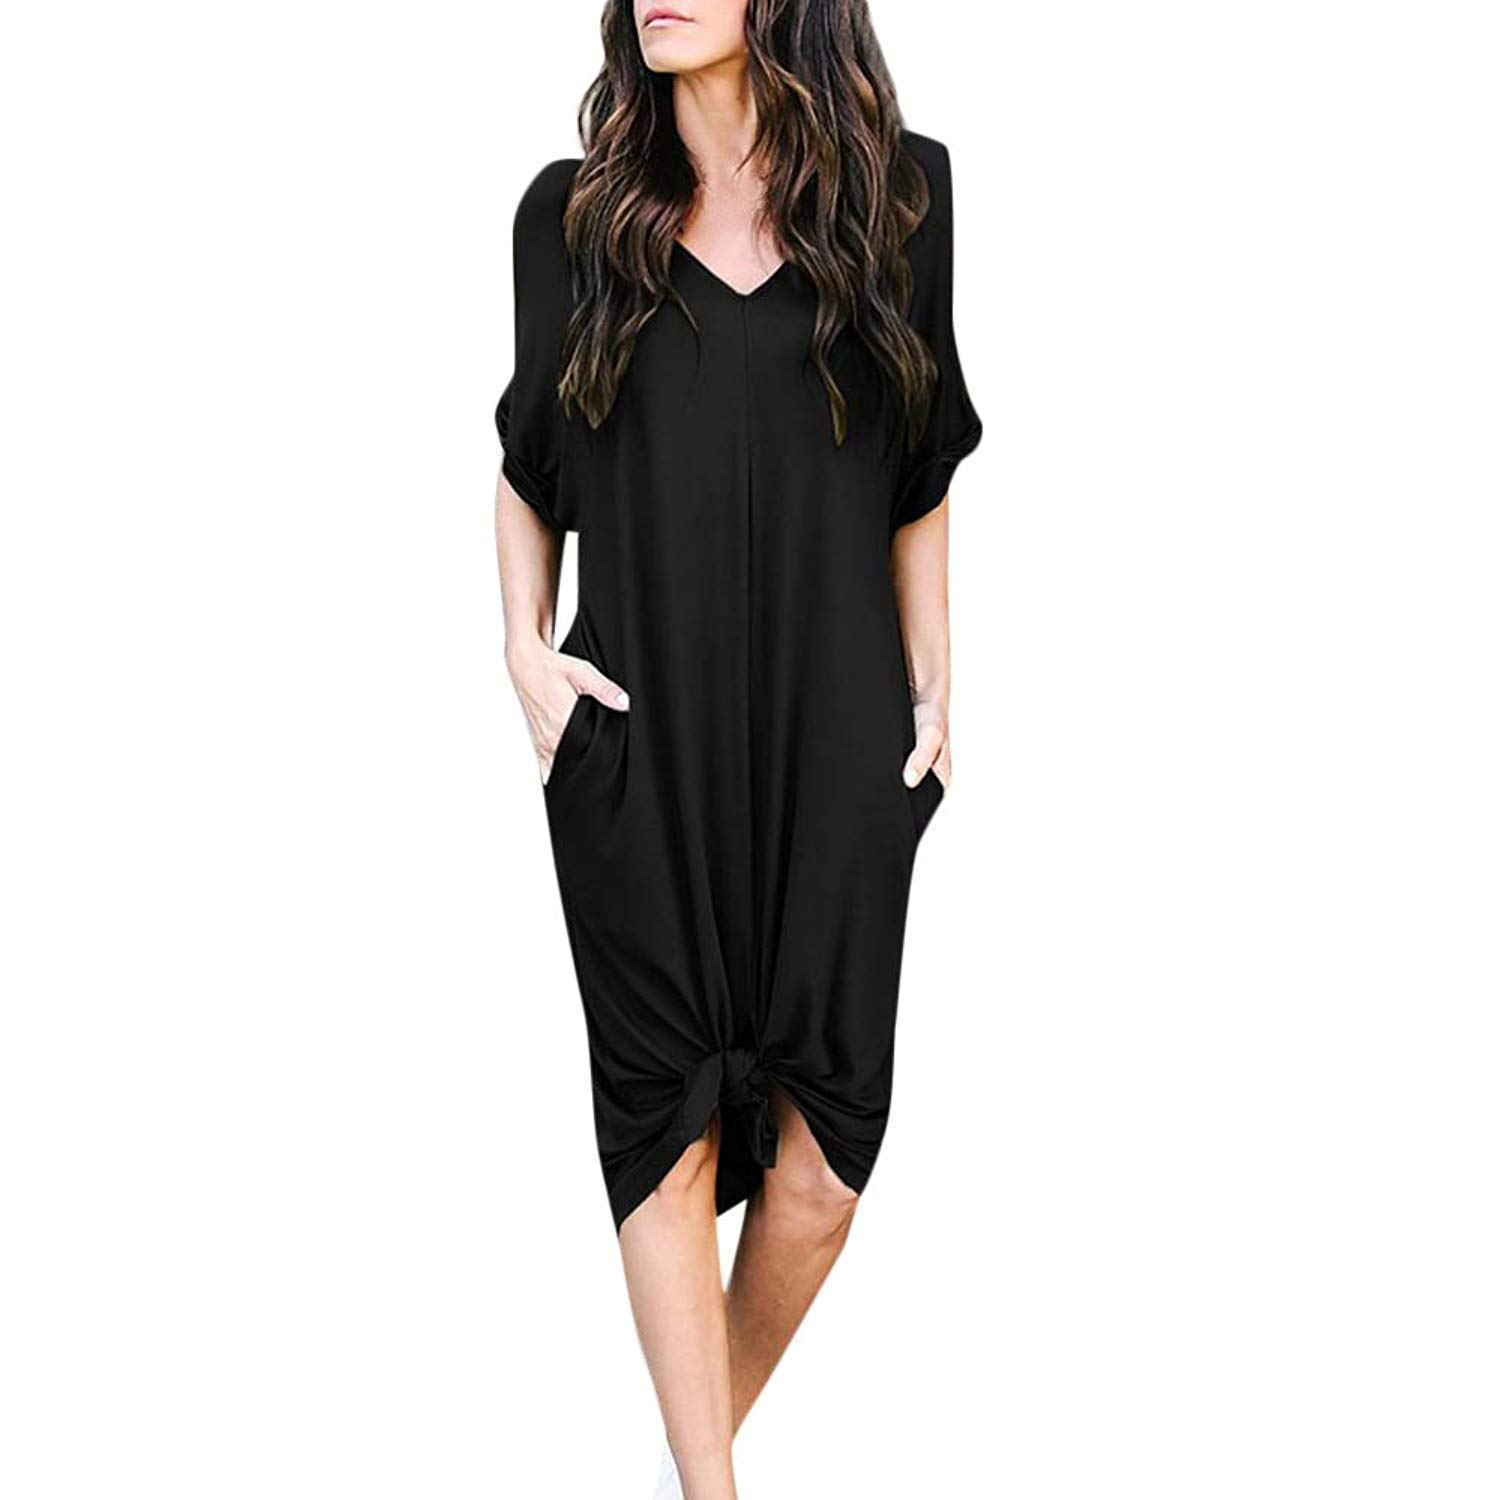 4822547f16 Get Quotations · Realdo Women's Solid Slip Dress, Casual Sexy Ladies Loose  V Neck Short Sleeve Knee-